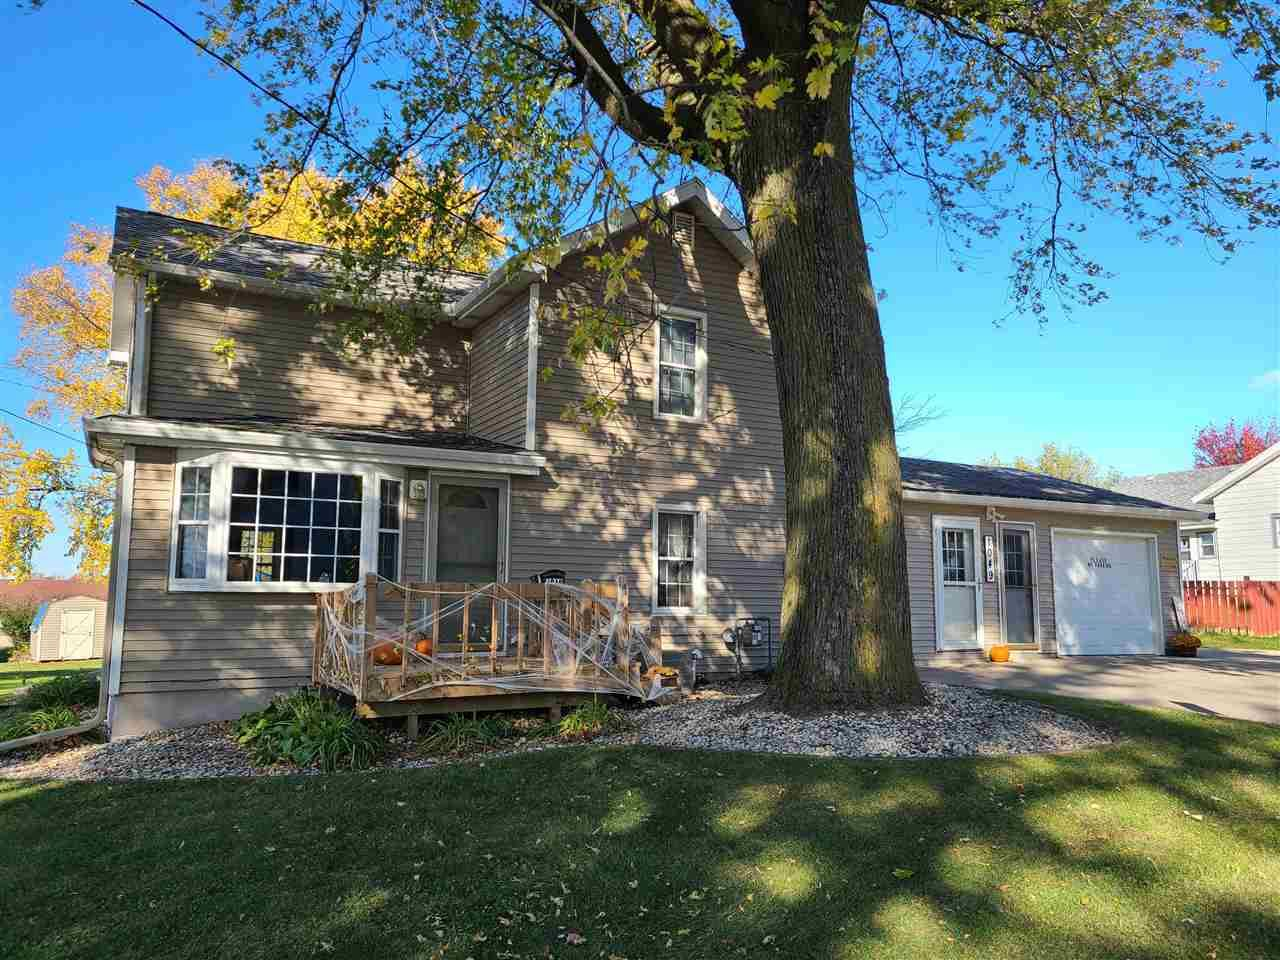 1049 7th Ave, Monroe, WI 53566 - #: 1896046